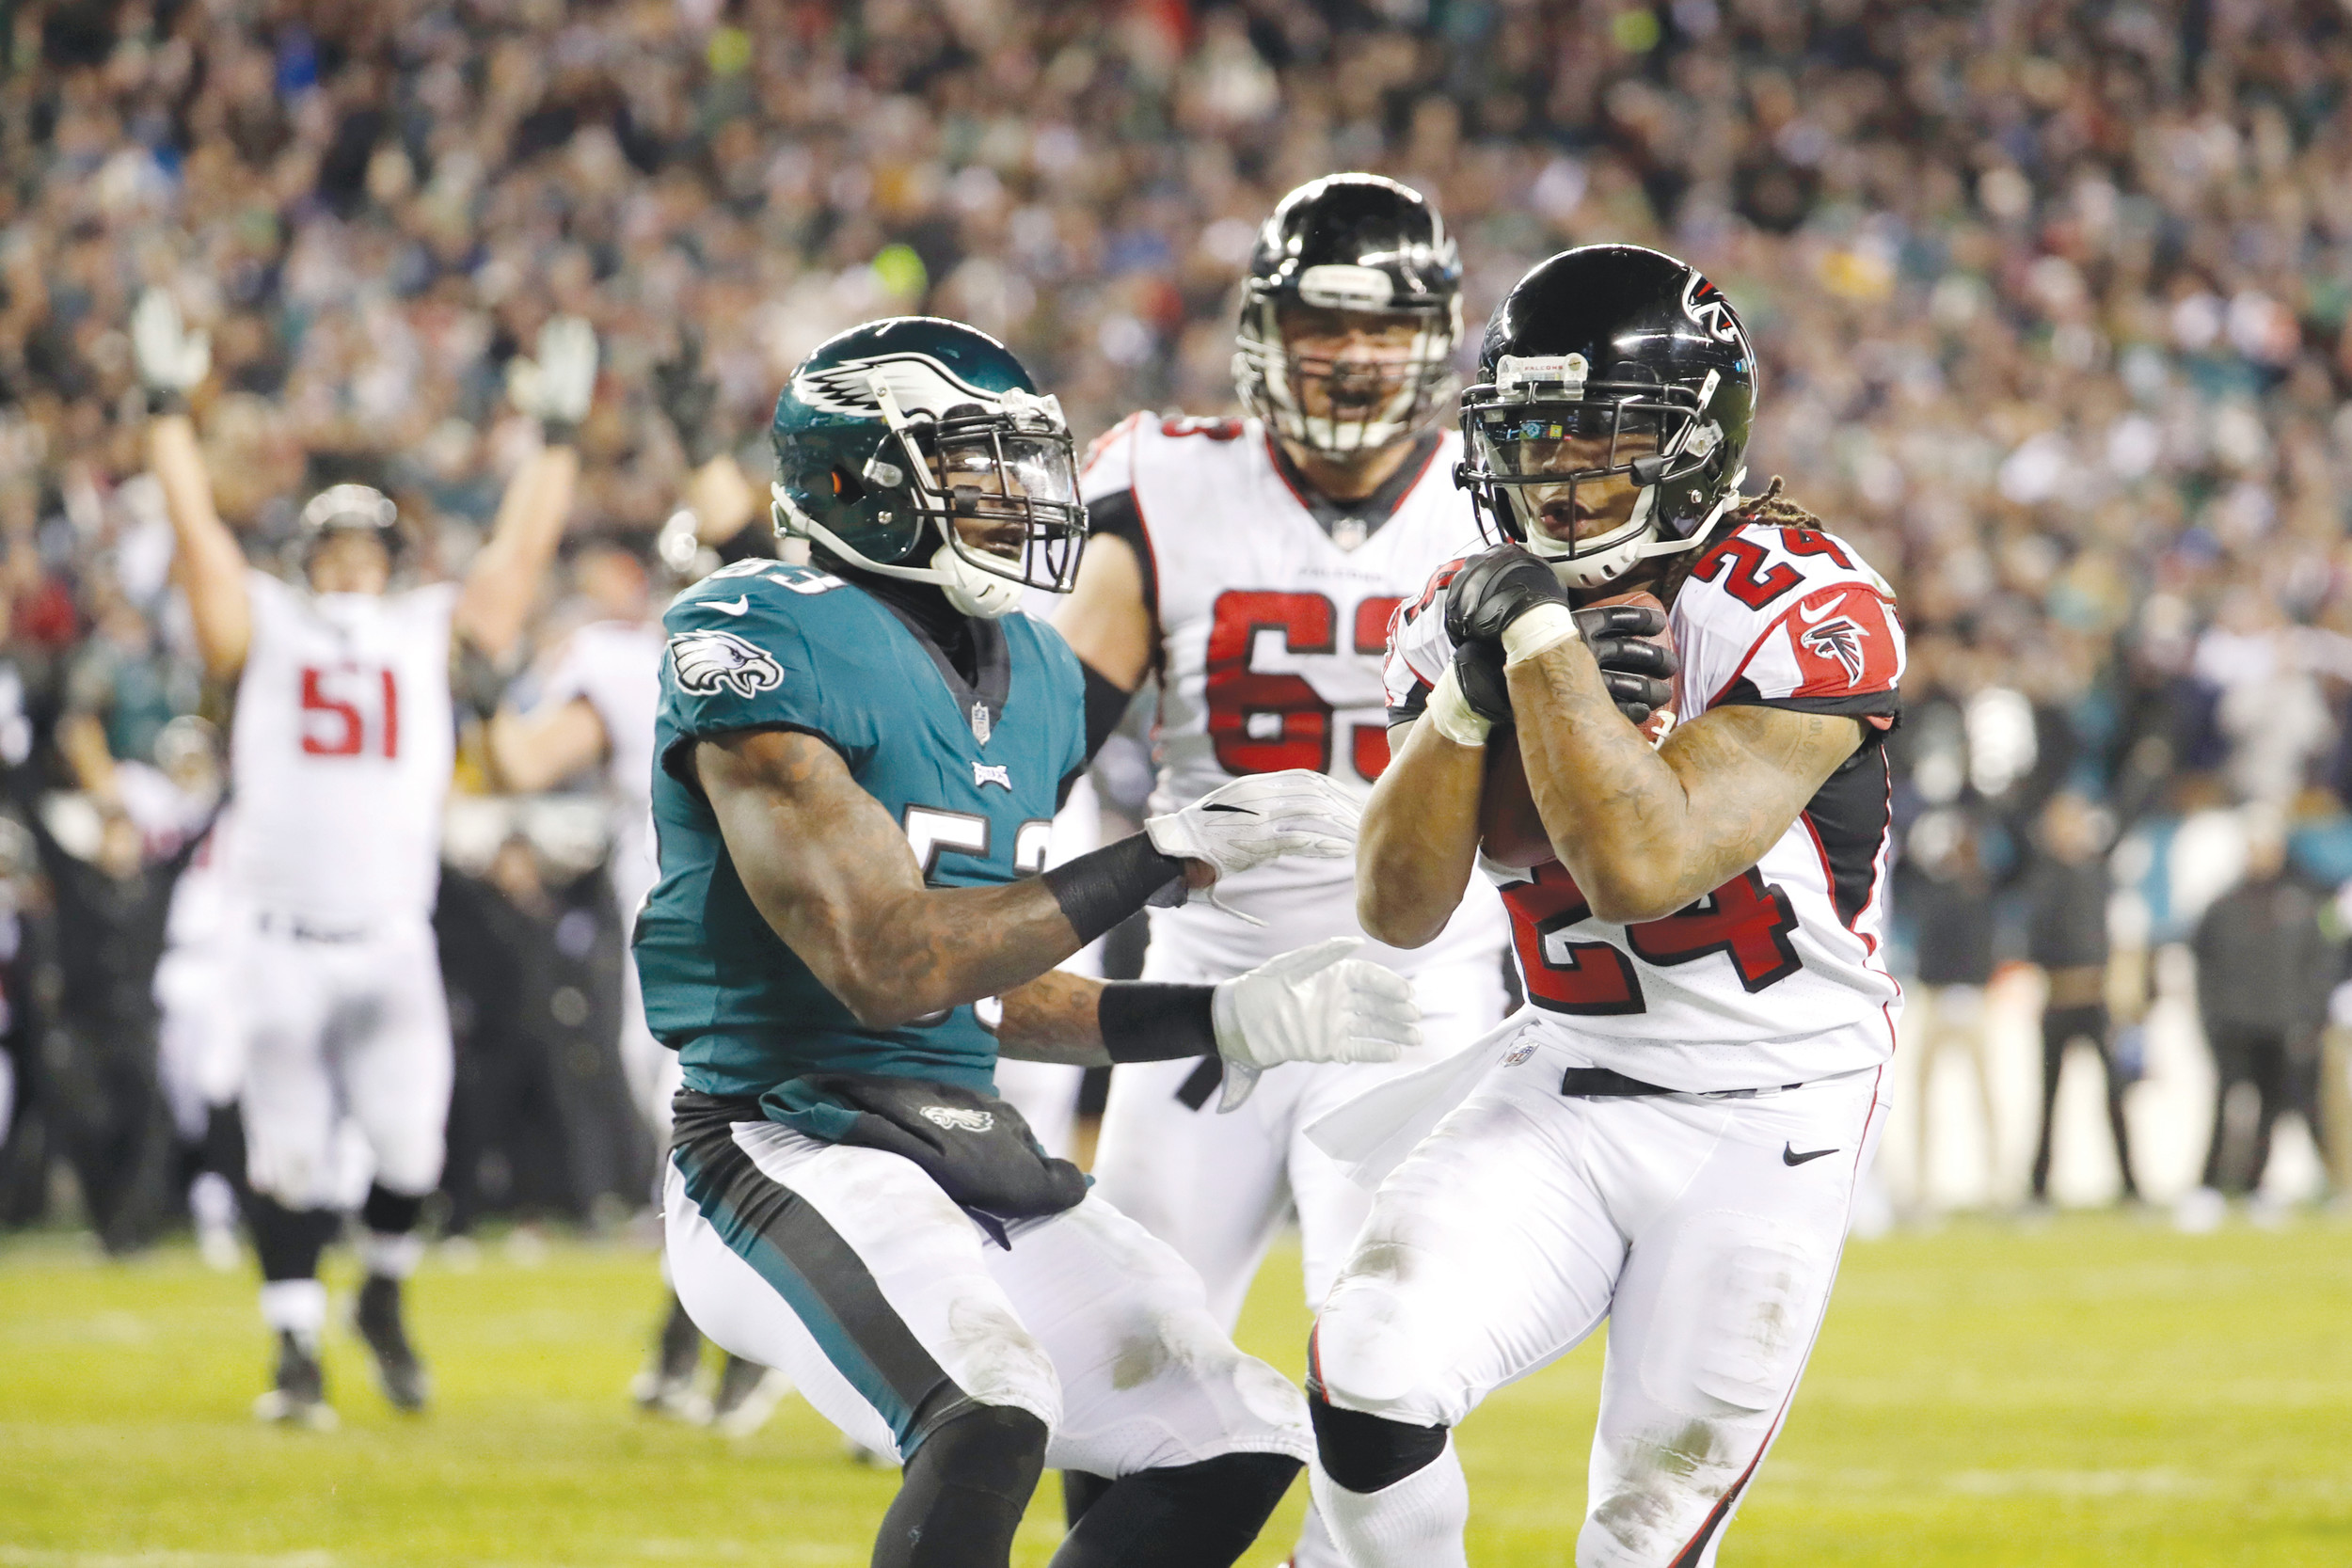 Atlanta running back Devonta Freeman (24) scores a touchdown against Philadelphia linebacker Nigel Bradham (53) during the first half of the Eagles' 15-10 victory in an NFC divisional playoff game on Saturday in Philadelphia.